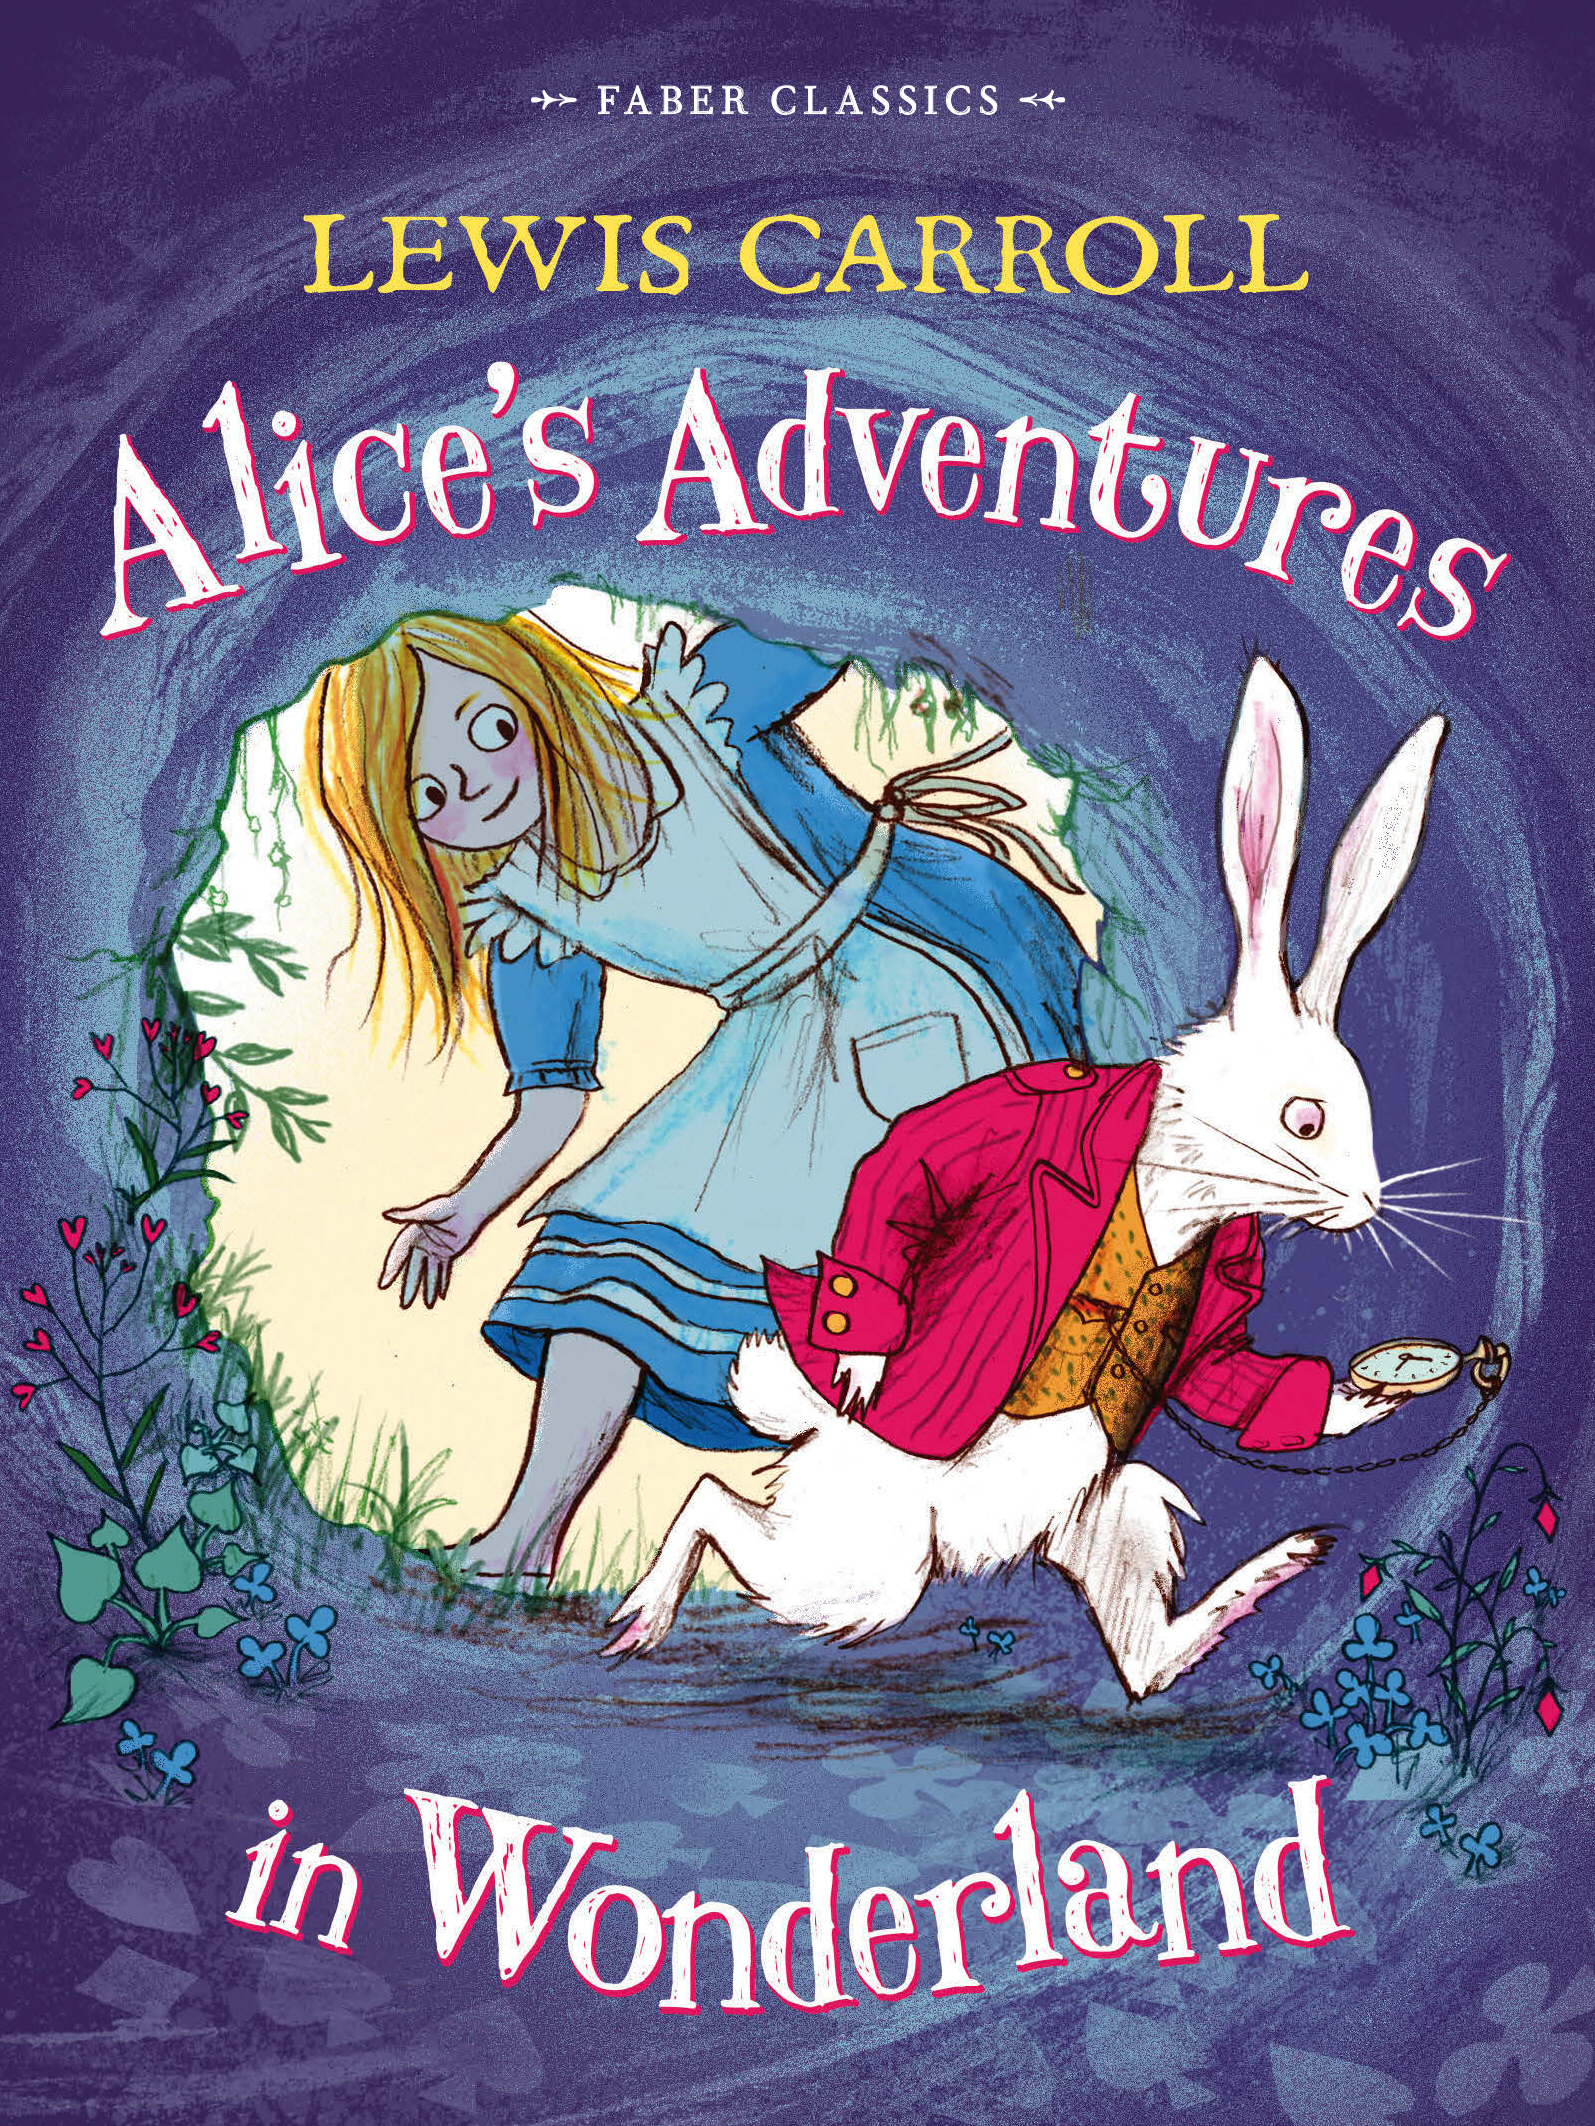 Alice's Adventures in Wonderland alice s adventures in wonderland through the looking glass and what alice found there